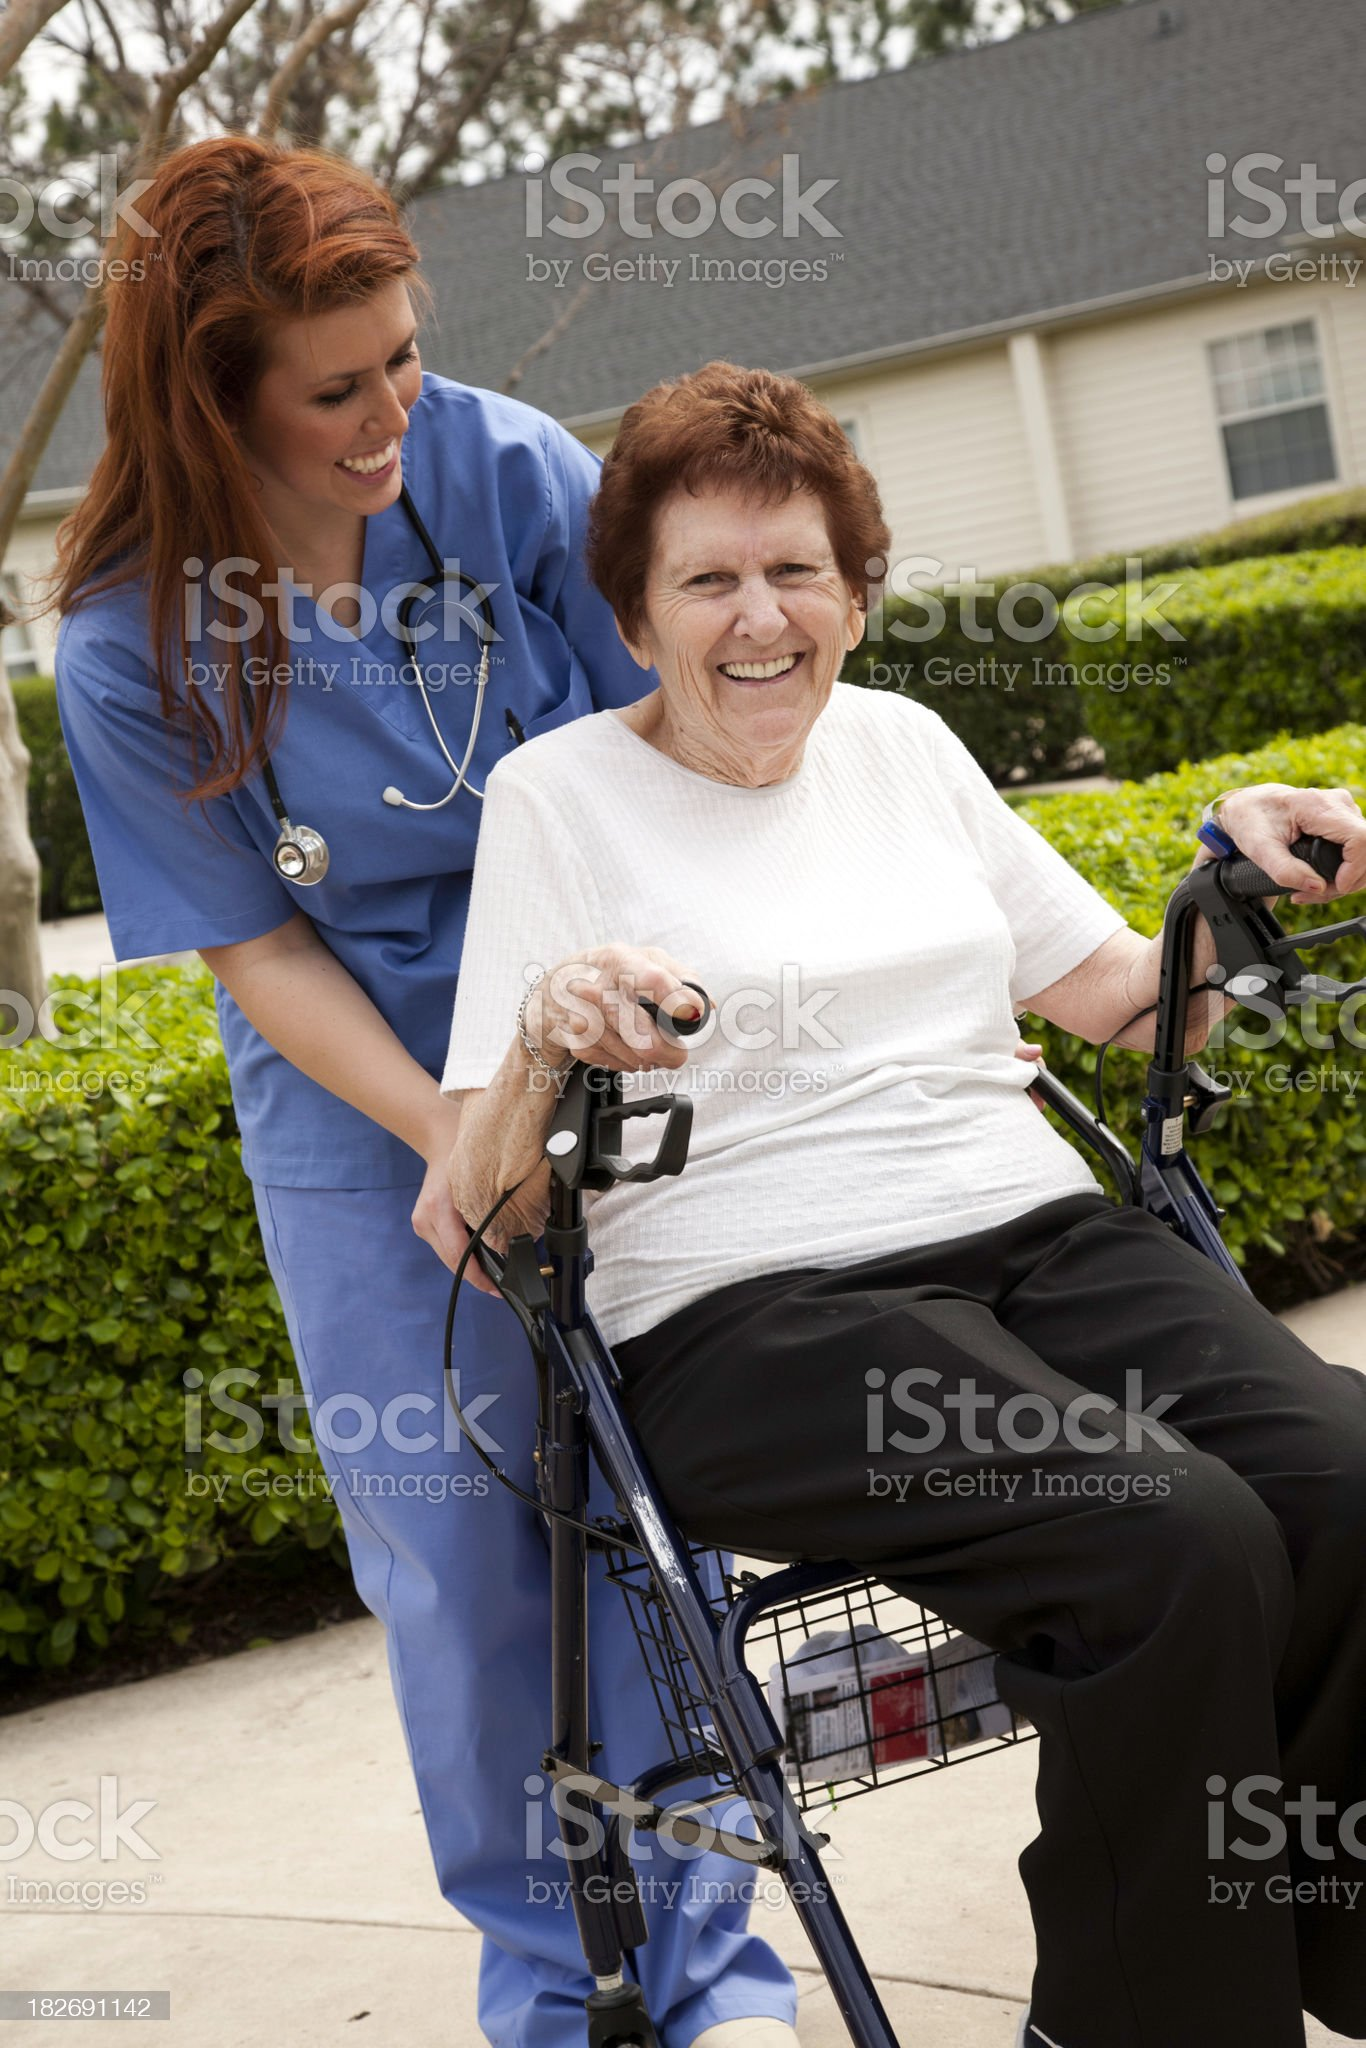 Healthcare Helper Assisting Elderly Lady on Her Walker/Rider royalty-free stock photo